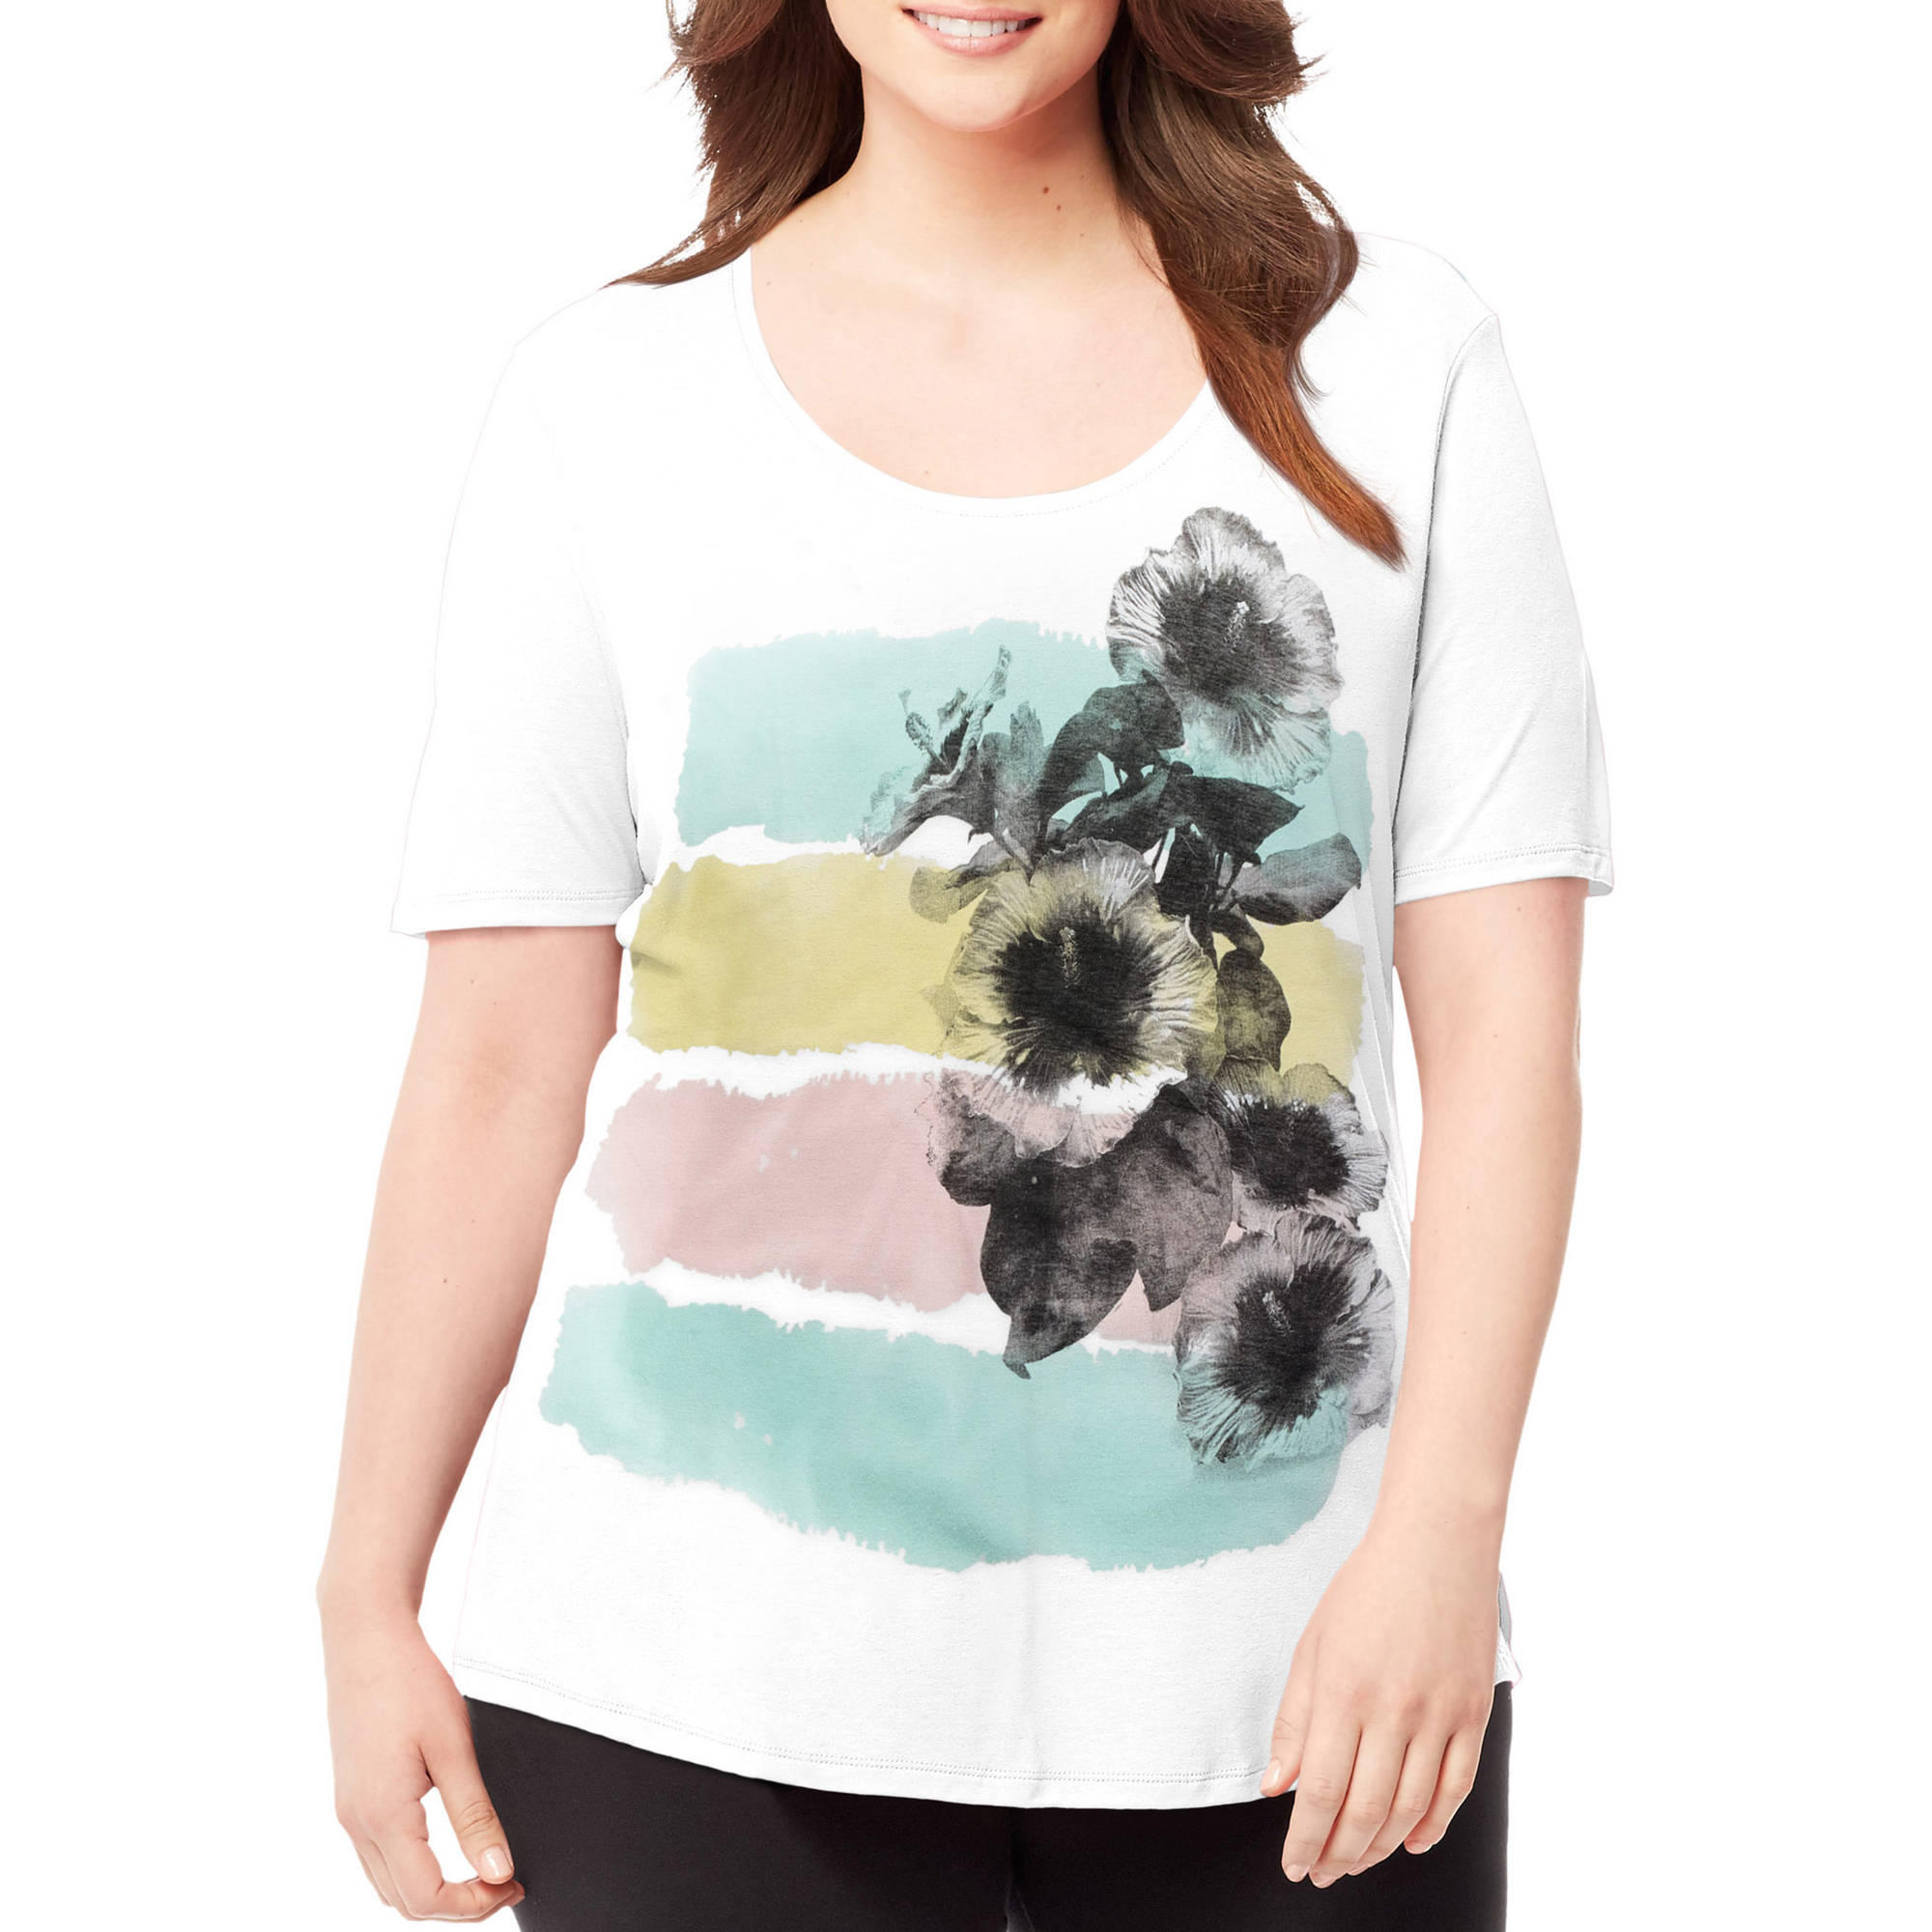 Just My Size by Hanes Women's Plus-Size Short-Sleeve Scoop-Neck Graphic T-Shirt